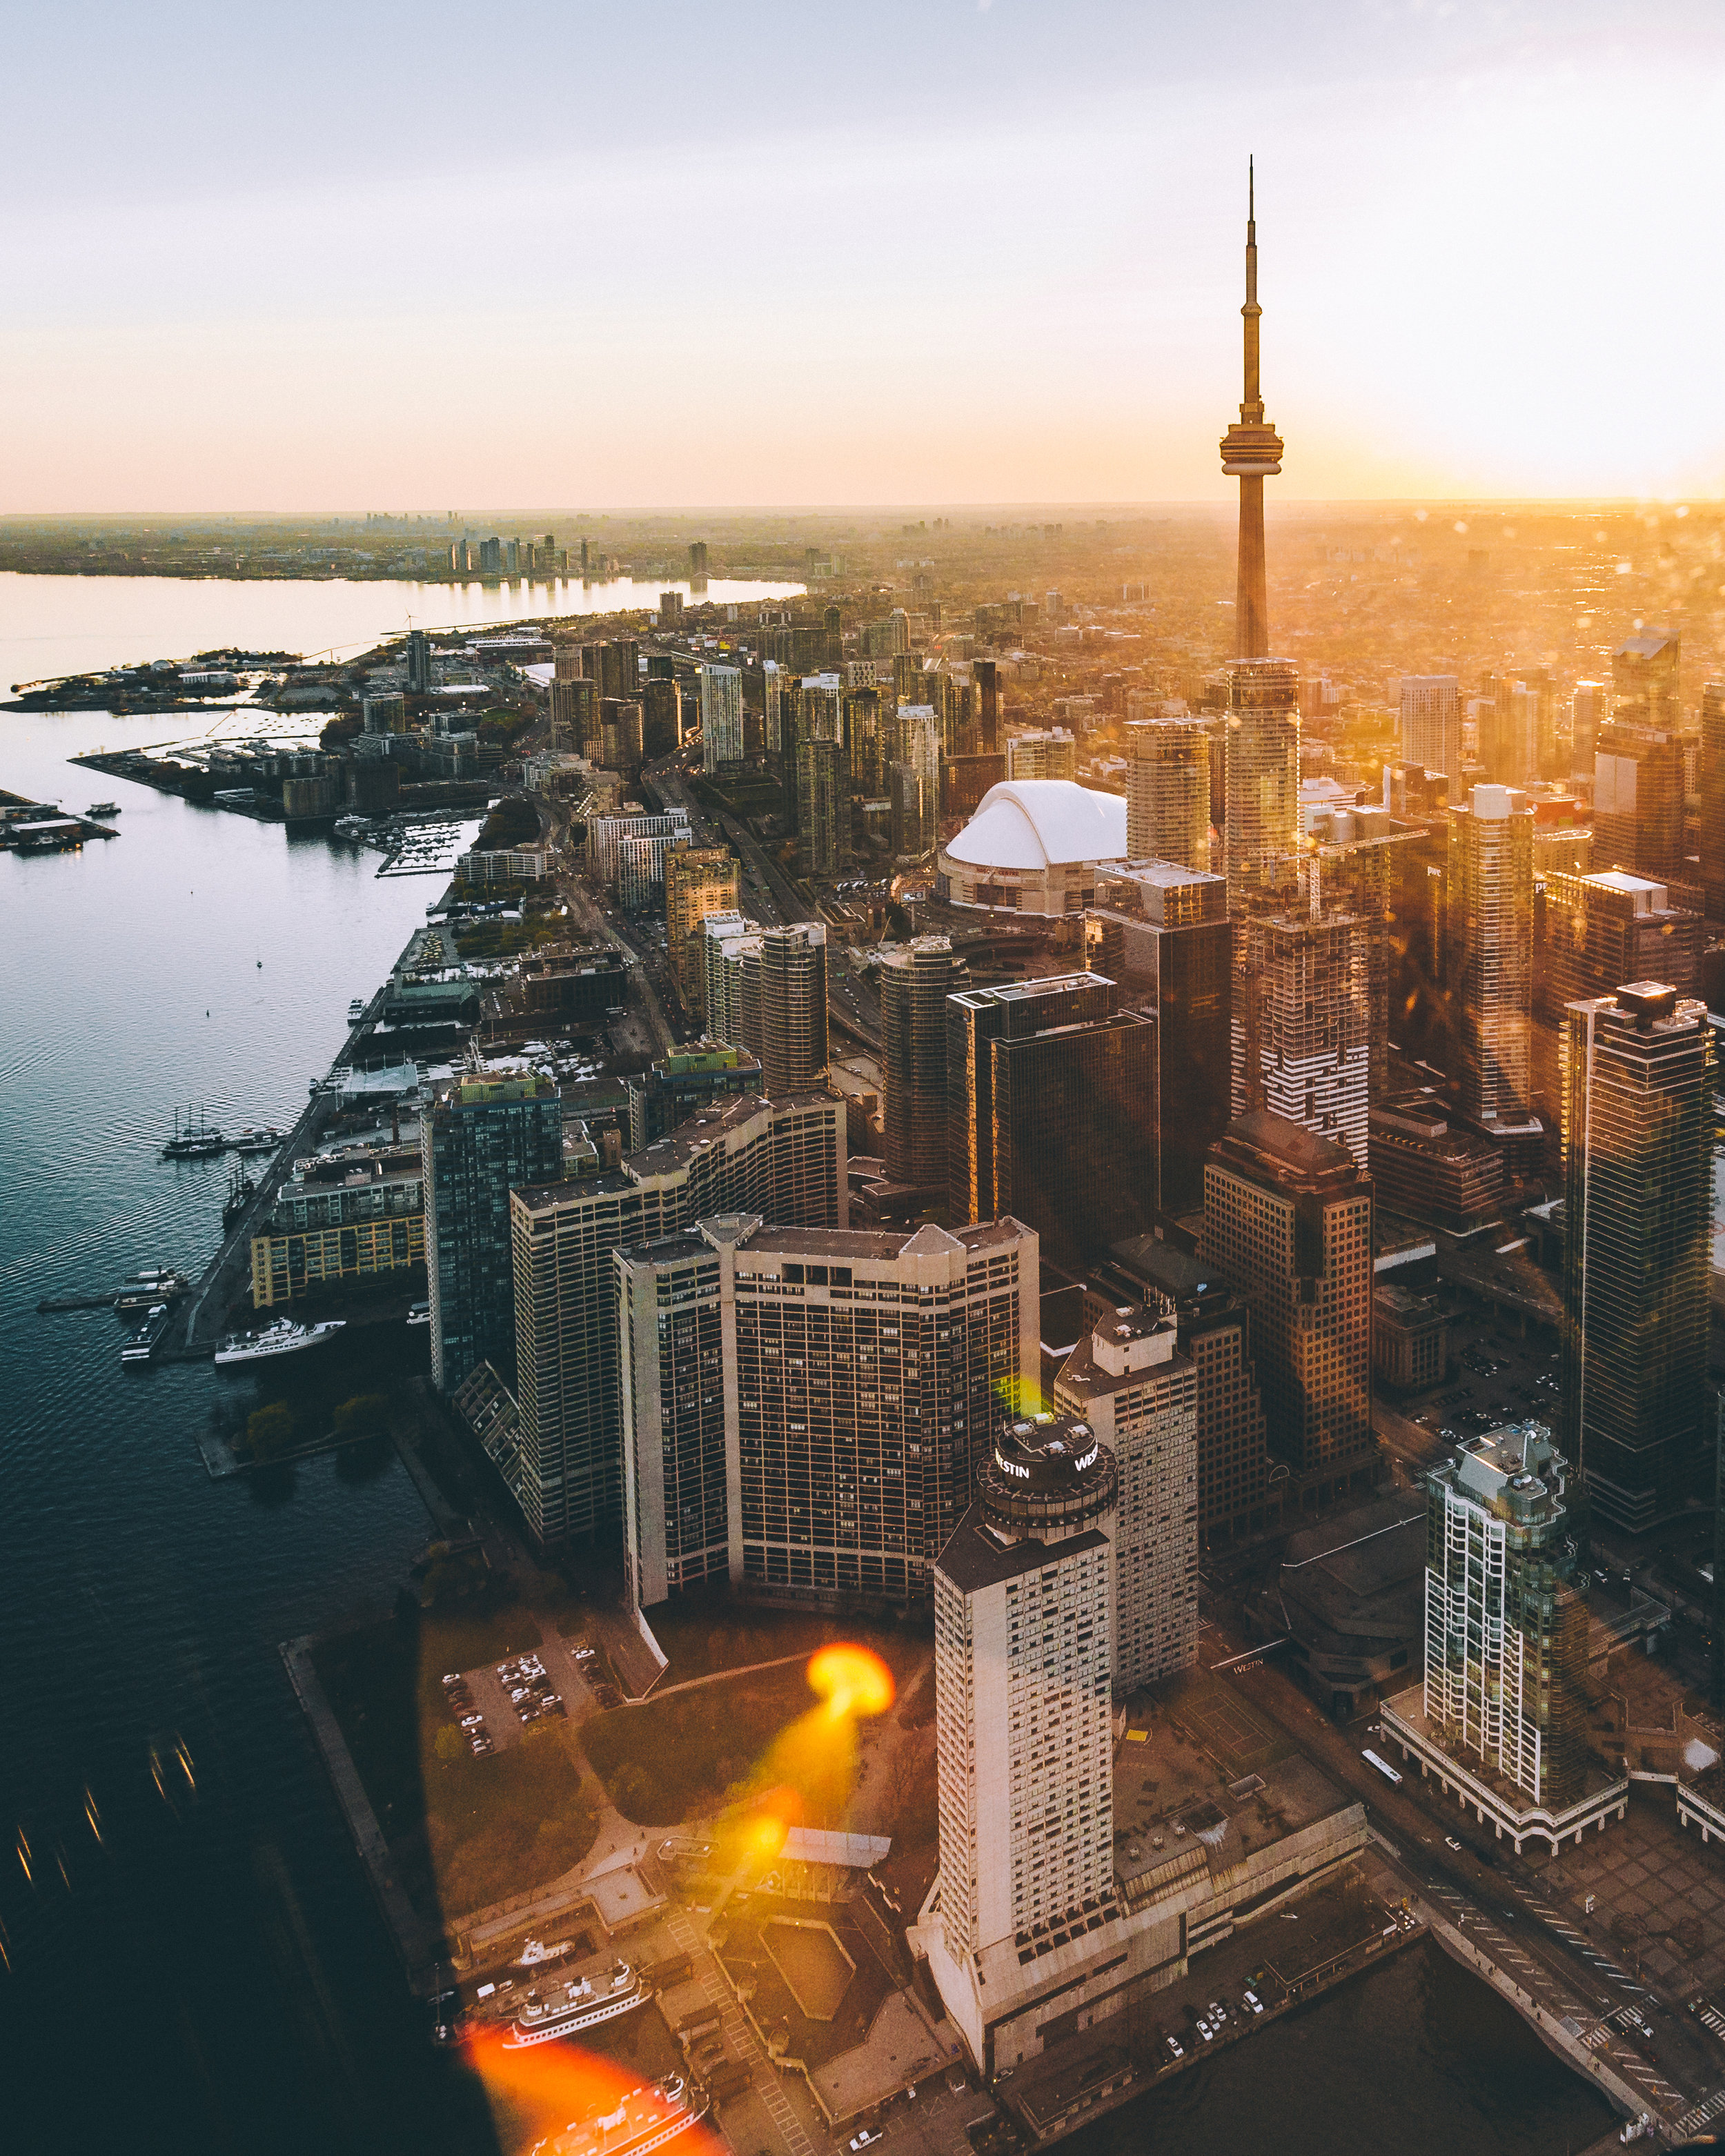 Ontario - Ontario is one of the provinces in Eastern Canada and is the second-largest province. Ontario's capital city is Toronto with a population of 2.9 million. Toronto has a large financial district and the stock exchange. Ottawa, the capital of Canada, is in southern Ontario. Ontario overall has a population of more than 14 million people (2018).Ontario has a continental climate with hot summers and cold winters when the temperature ranges between 36-14 degrees F (0 and -10 degrees C). Fortunately the major cities cater for the cold with indoor shopping centres and sports venues.Canada is the leading producer of fruit and vegetables and has many vineyards and wineries. Ontario is the main producer of nickel, cobalt, salt and magnesium in Canada.